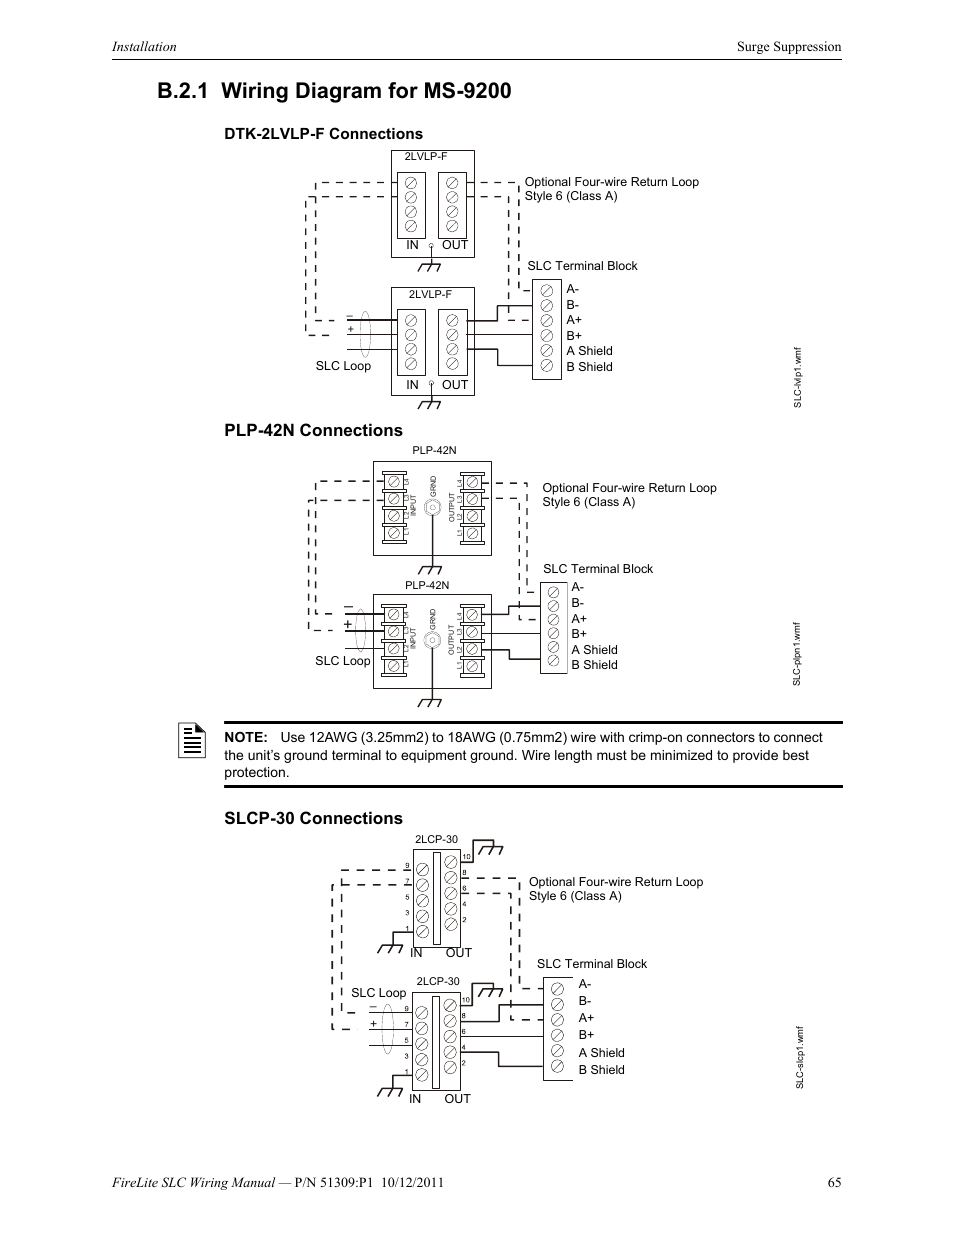 B.2.1 wiring diagram for ms-9200, Dtk-2lvlp-f connections